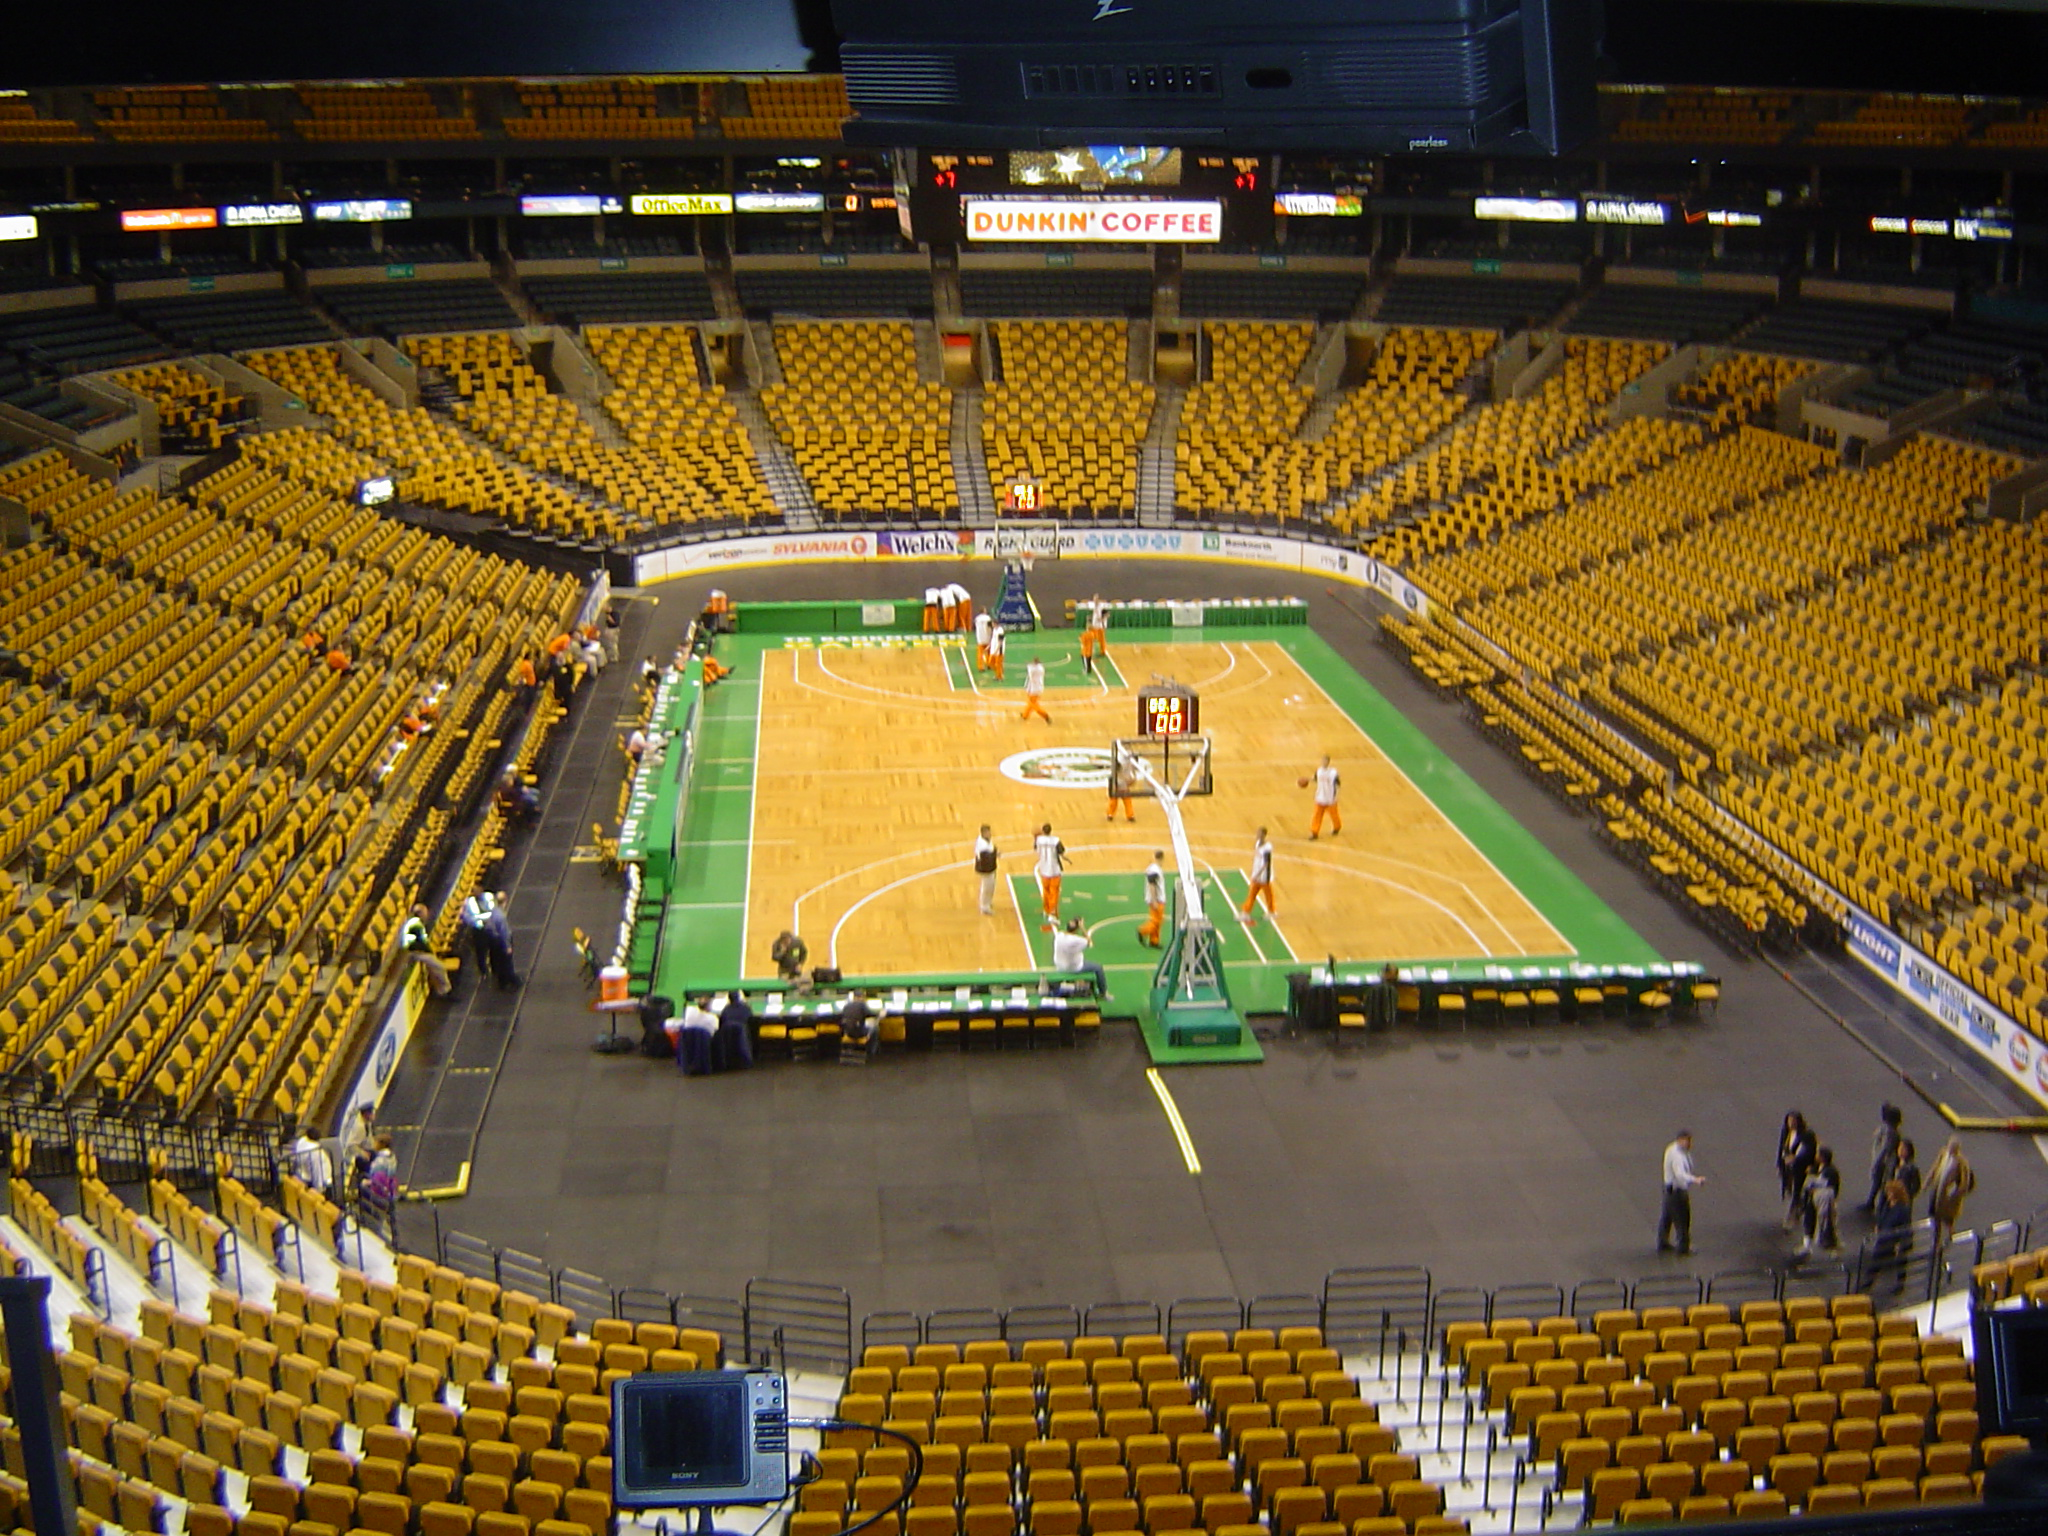 Boston Garden Basketball Court Flickr Photo Sharing